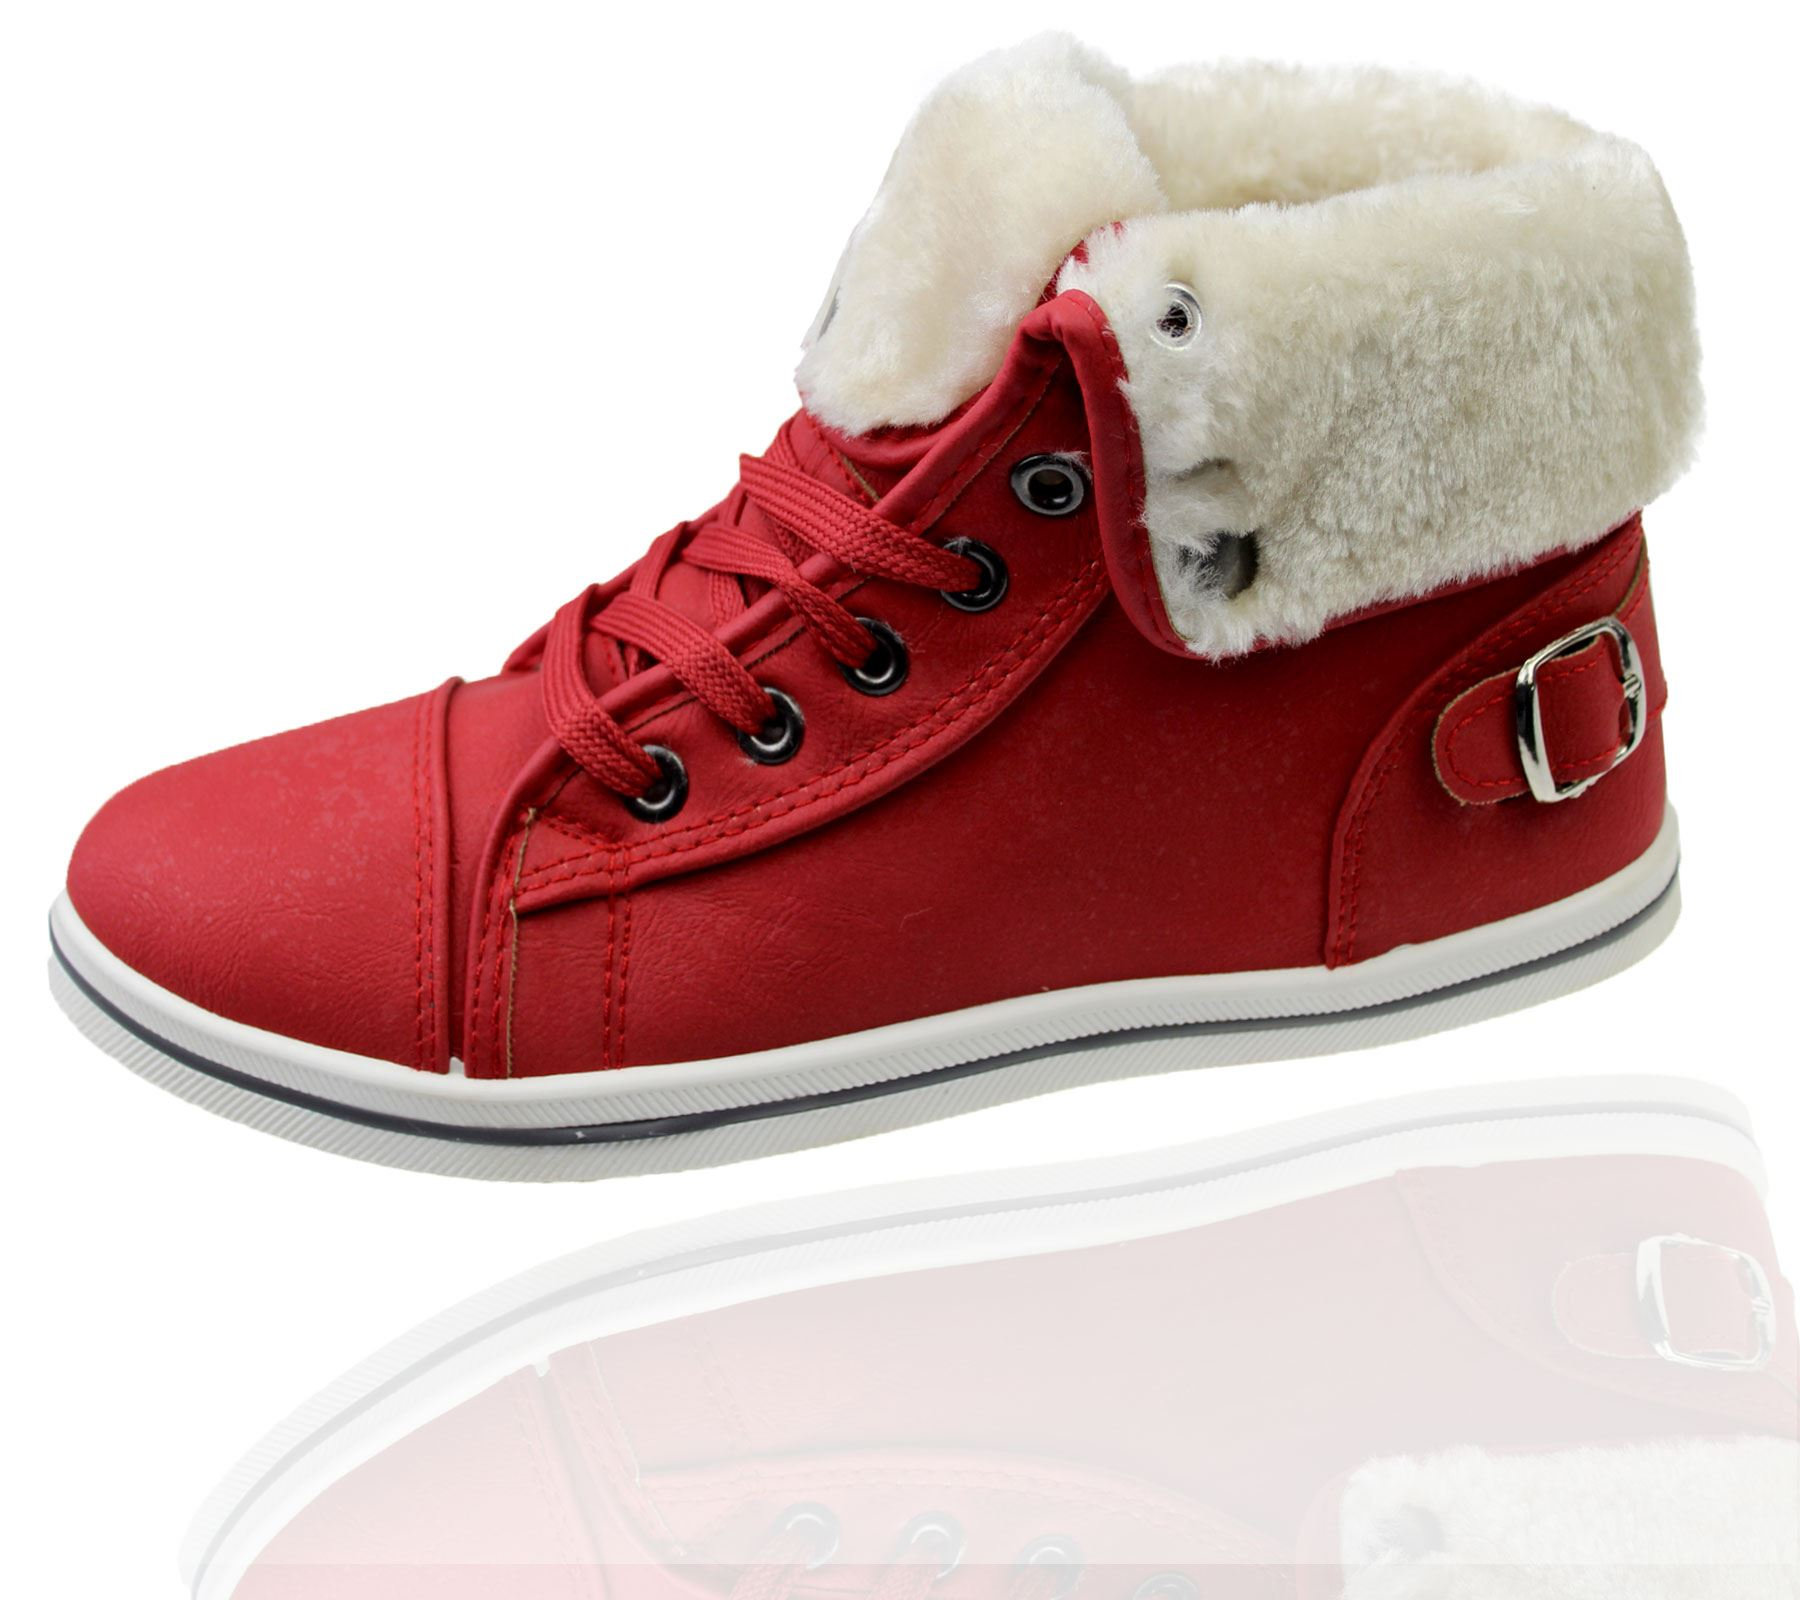 Girls-Boots-Womens-Warm-Lined-High-Top-Ankle-Trainer-Ladies-Winter-Shoes-Size miniatura 45